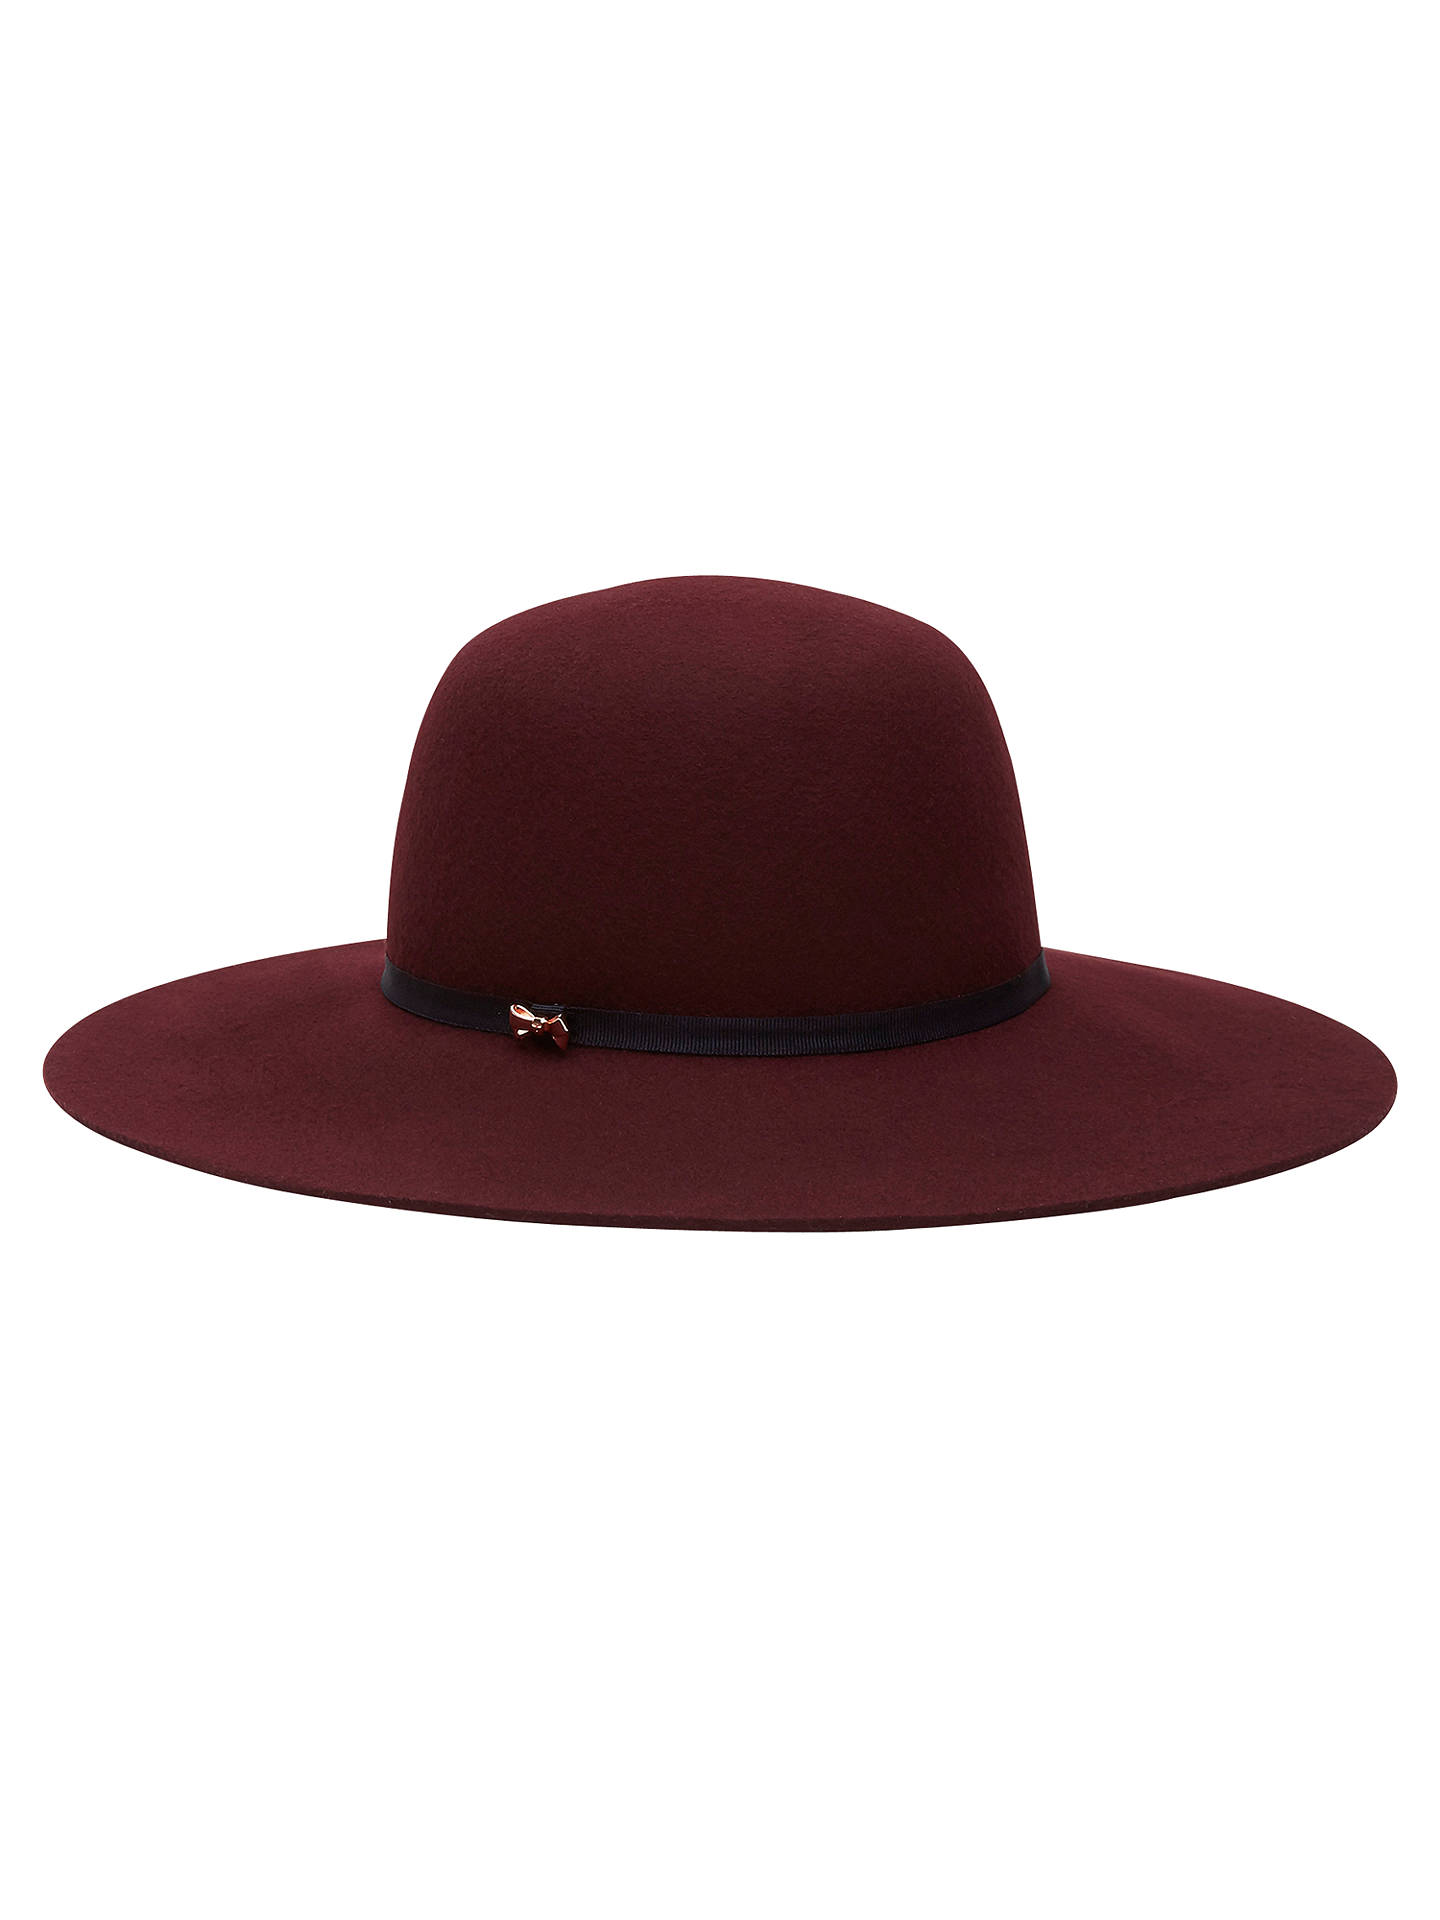 BuyTed Baker Cooney Floppy Wool Felt Hat 0443527b4bc